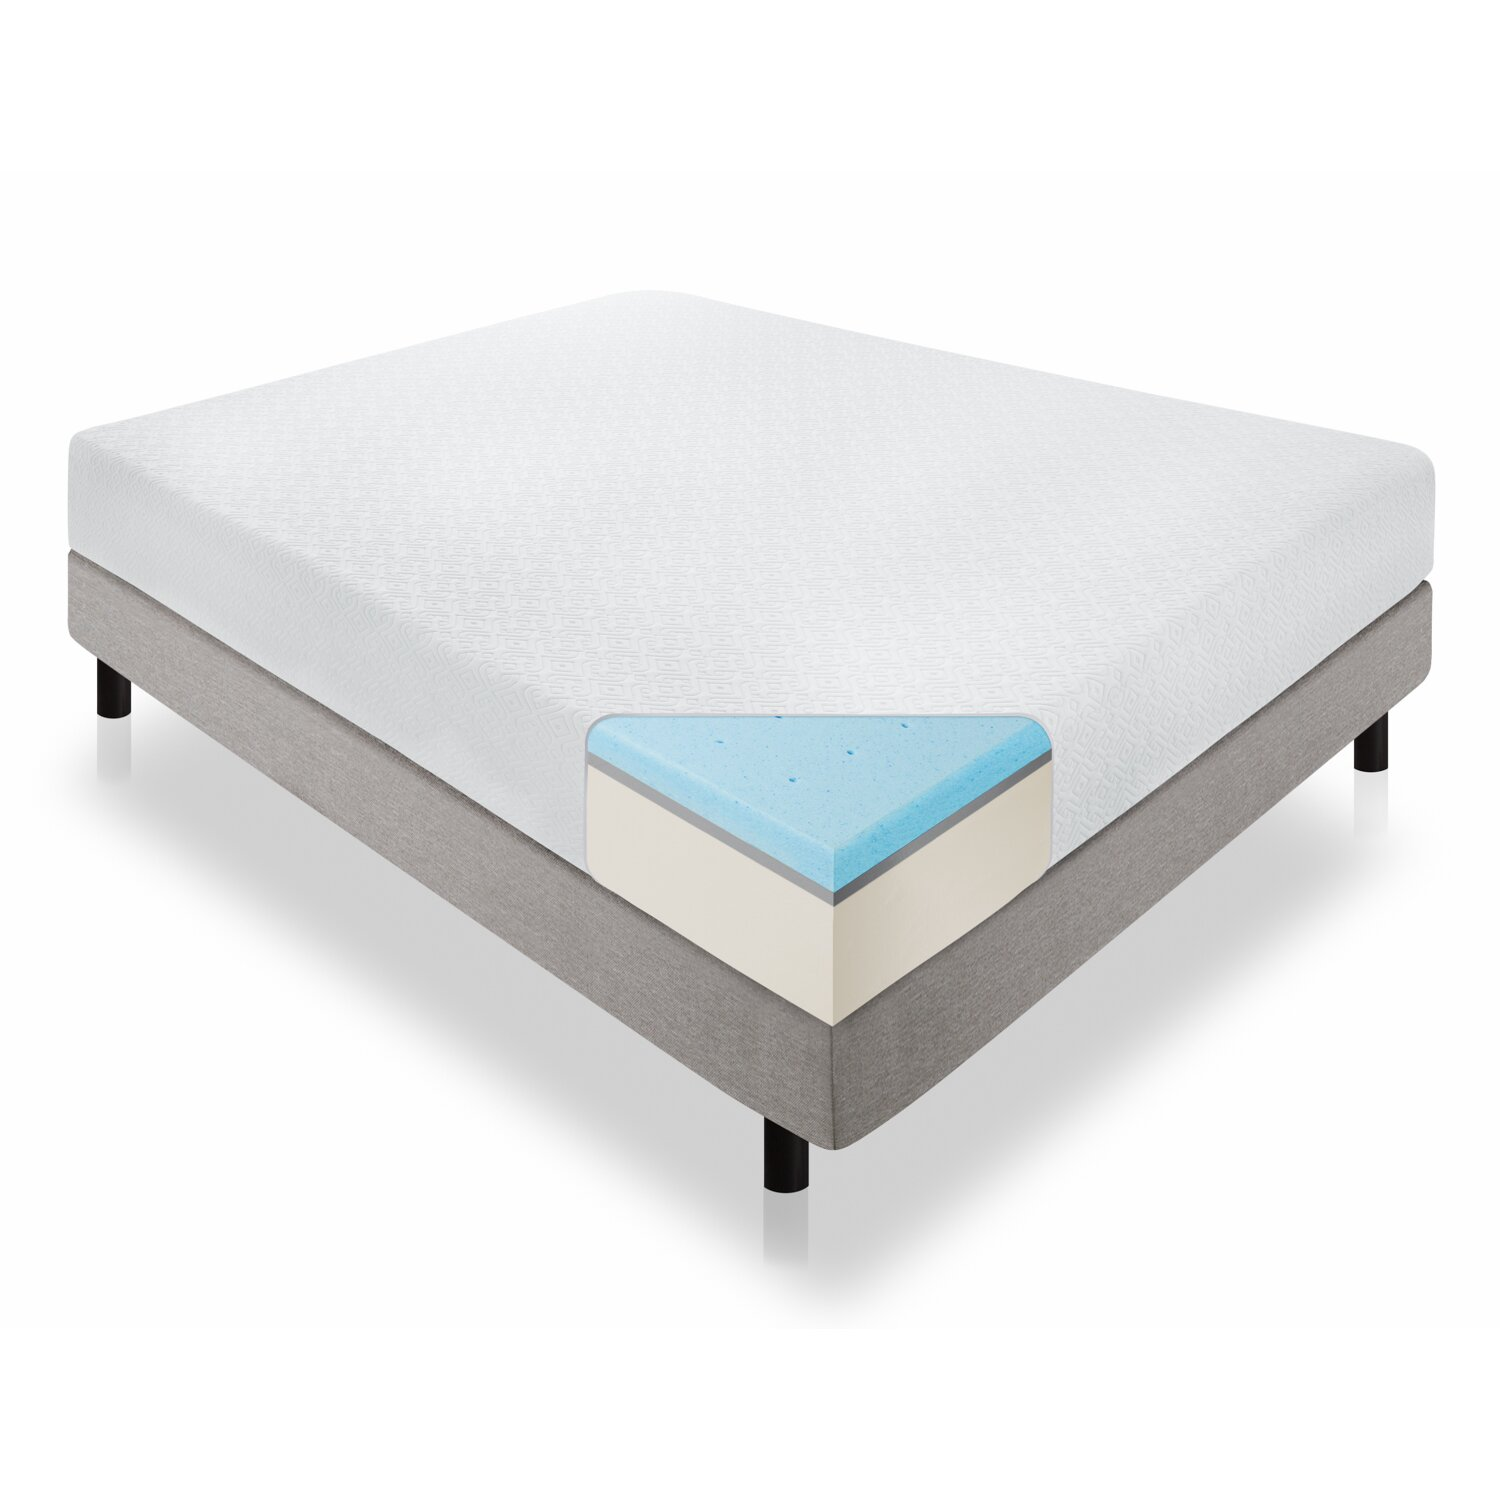 Lucid 12 plush gel memory foam mattress reviews Mattress sale memory foam